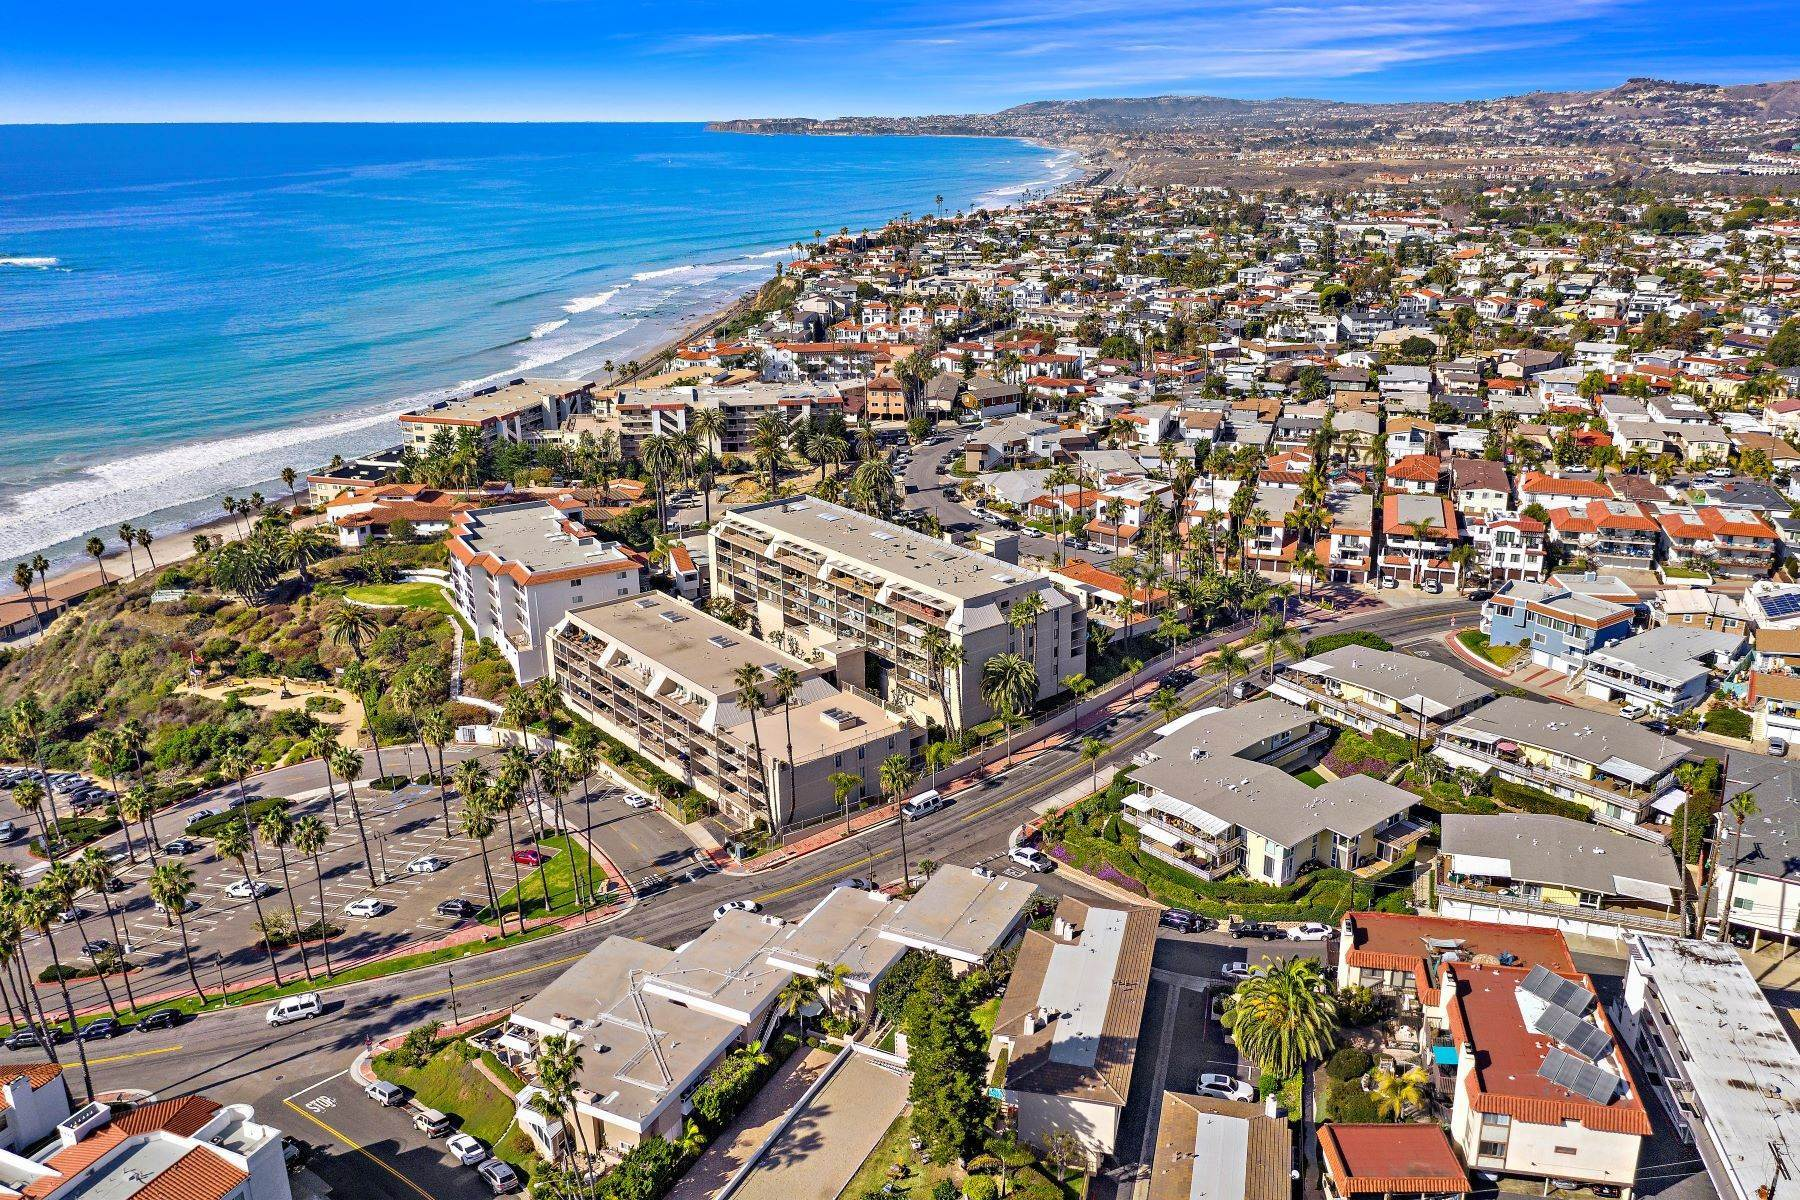 40. Condominiums for Sale at 321 Acebo Lane Unit #C, San Clemente, CA 92672 321 Acebo Lane, Unit #C San Clemente, California 92672 United States